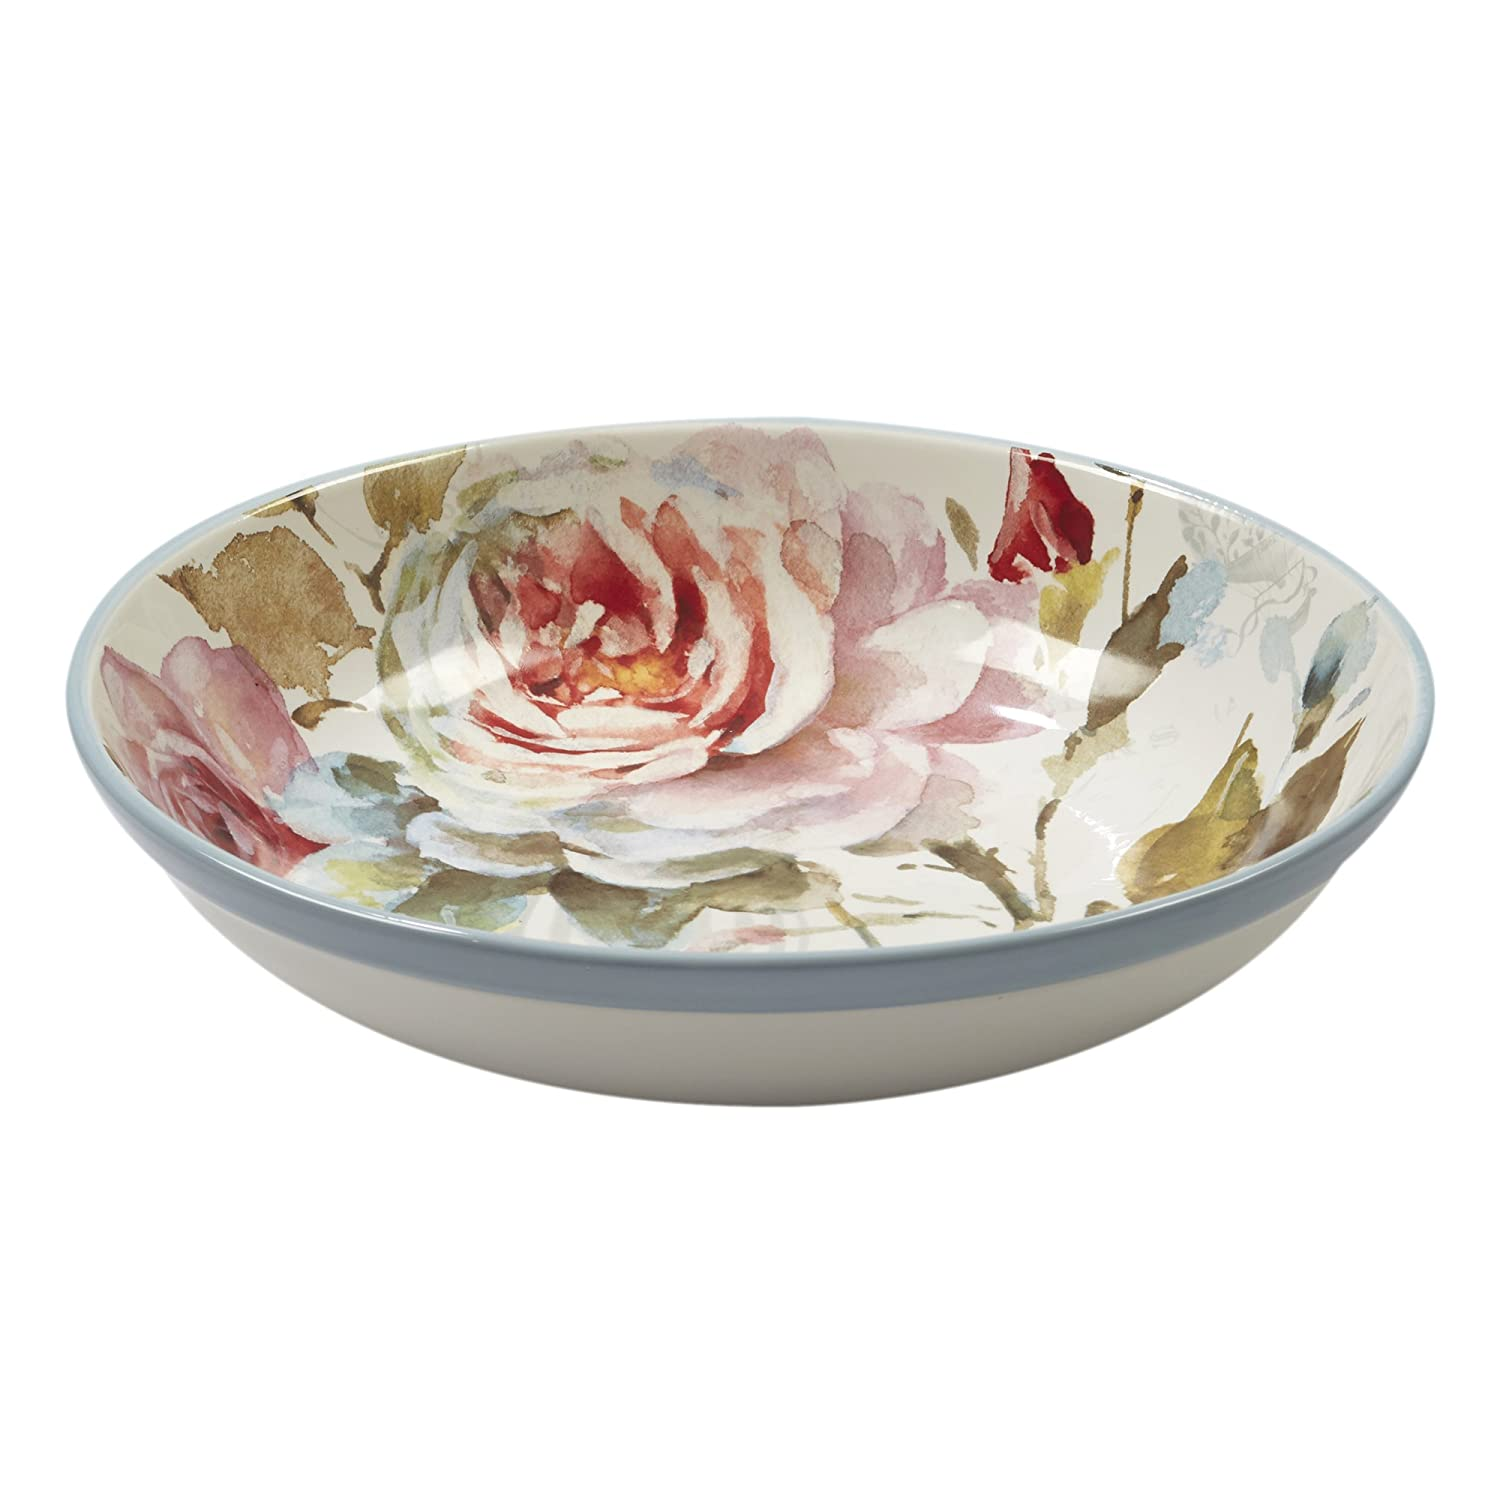 Certified International 23583 13' x 3' Beautiful Romance Serving/Pasta Bowl One Size Multicolor